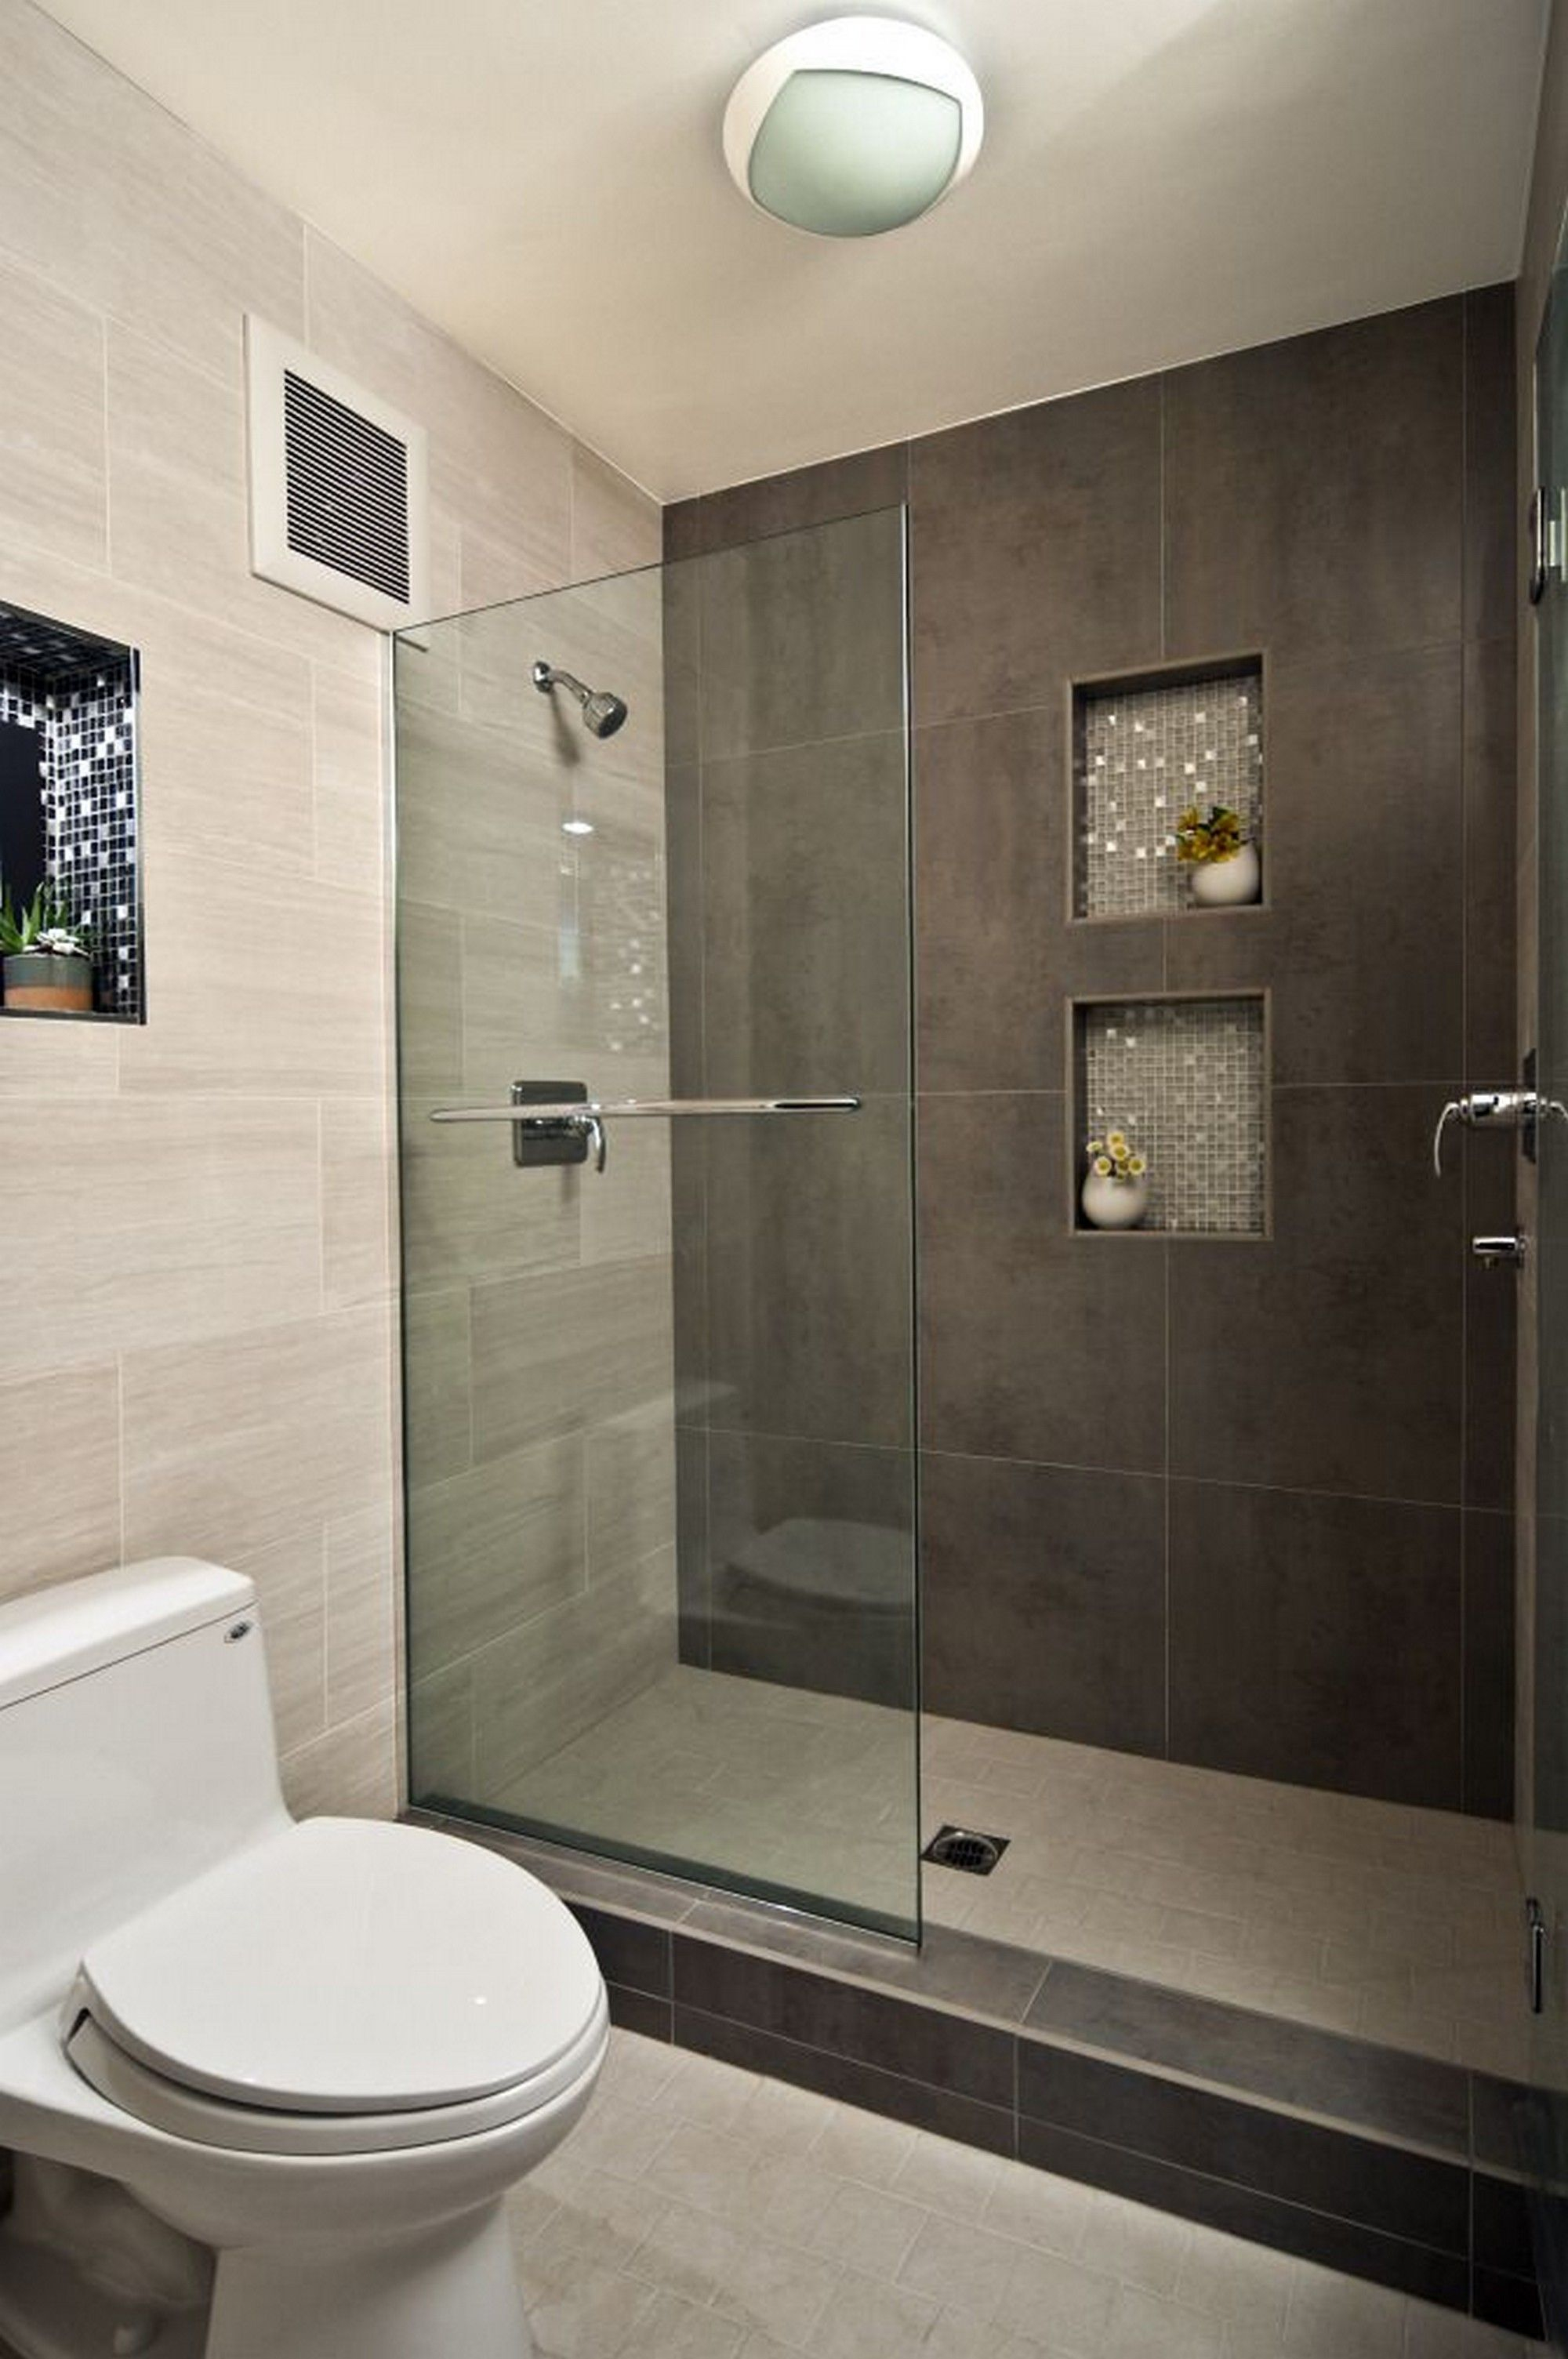 Lovely Modern Bathroom Design Ideas With Walk In Shower | Pinterest | Small within Elegant Ideas For Small Bathroom Remodel